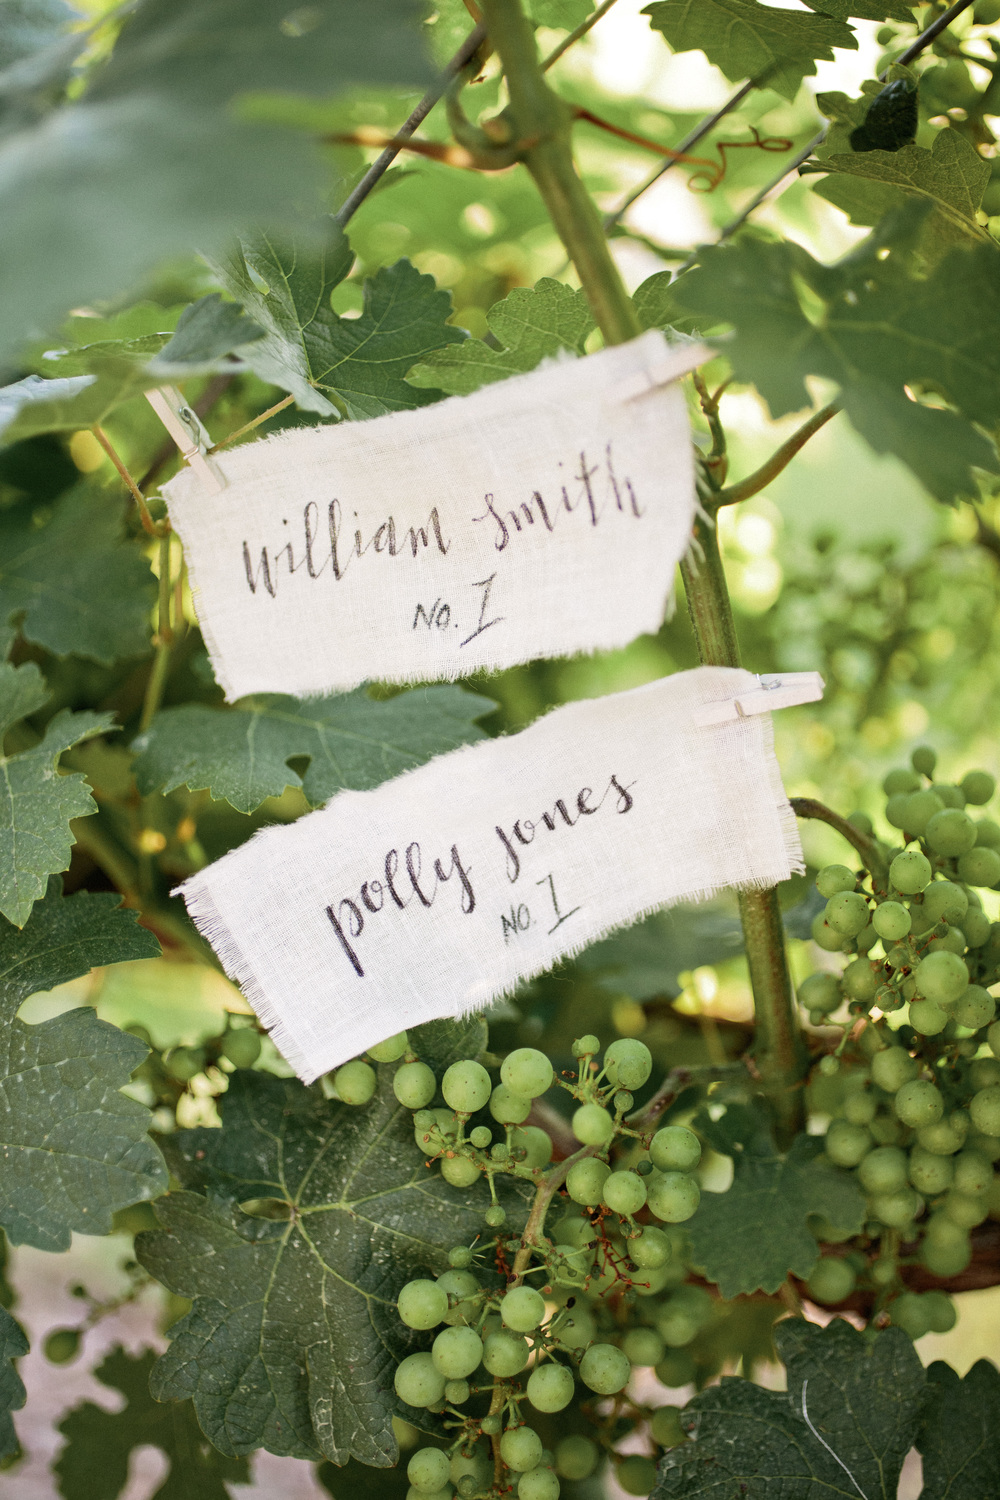 Hudson-Nichols-Vineyard-Wedding-Calligraphy-Vines-Placecard0172.jpg